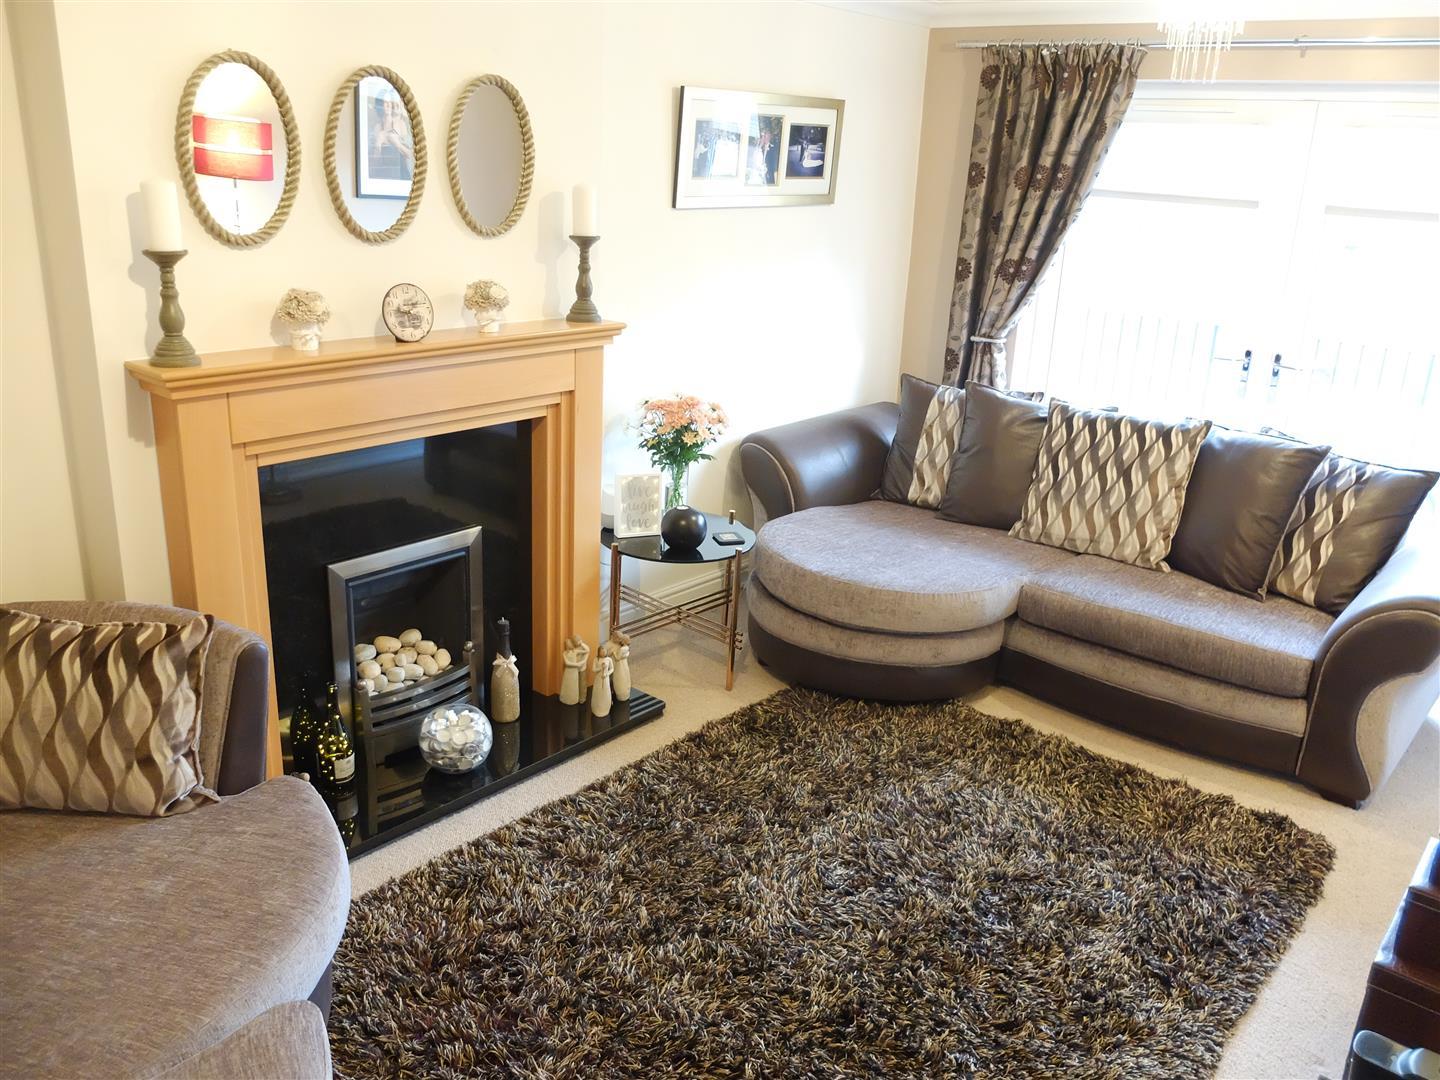 4 Bedrooms House - Townhouse For Sale 9 Turnstone Drive Carlisle